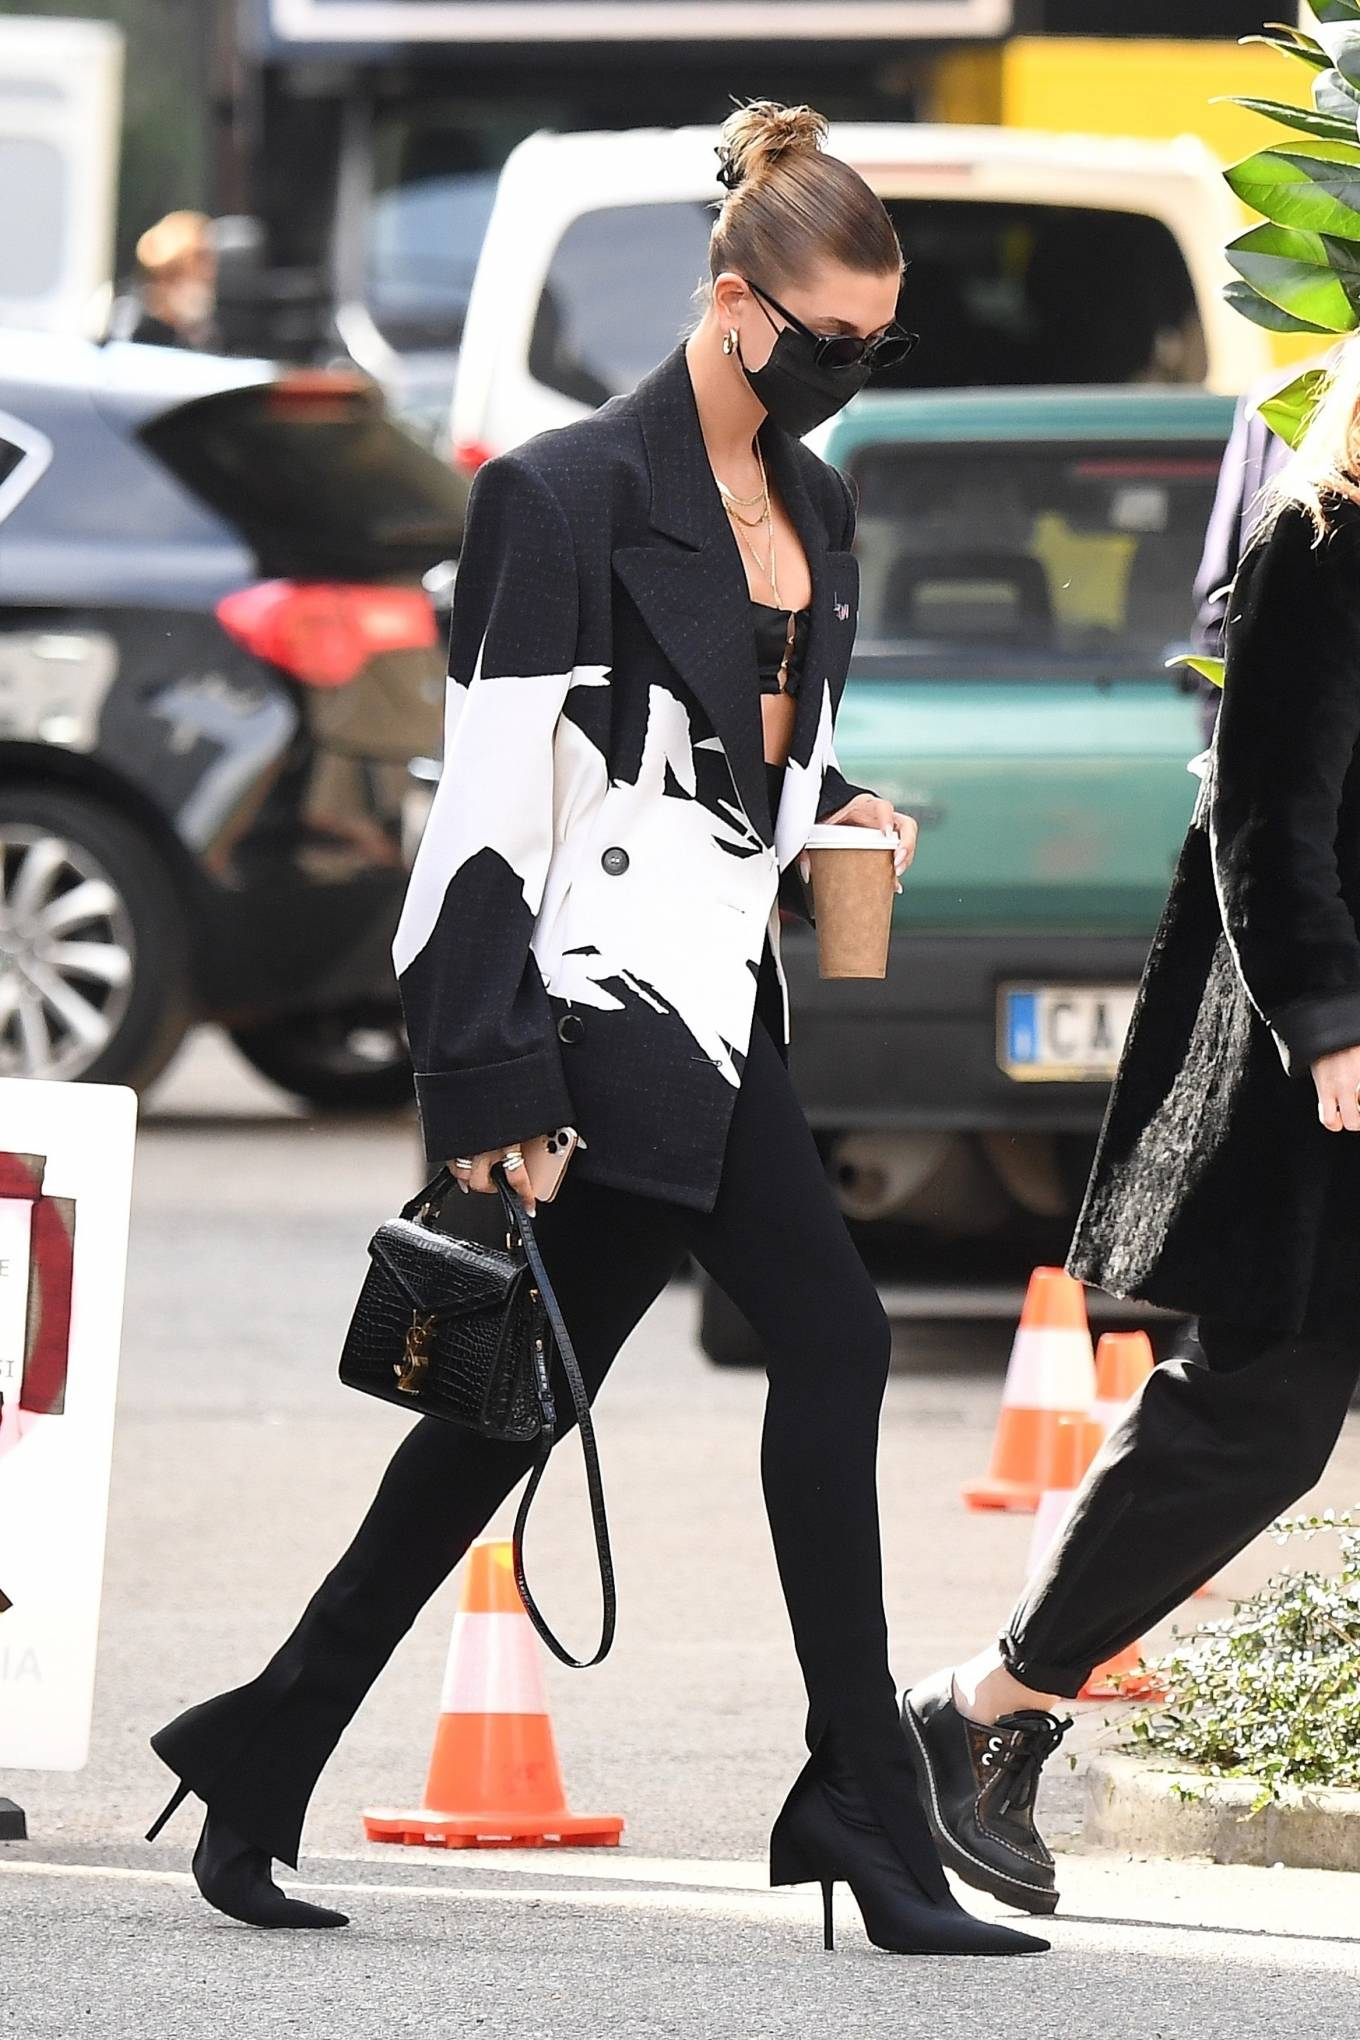 Kendall Jenner 2020 : Hailey Bieber and Kendall Jenner – Out in Milan-14